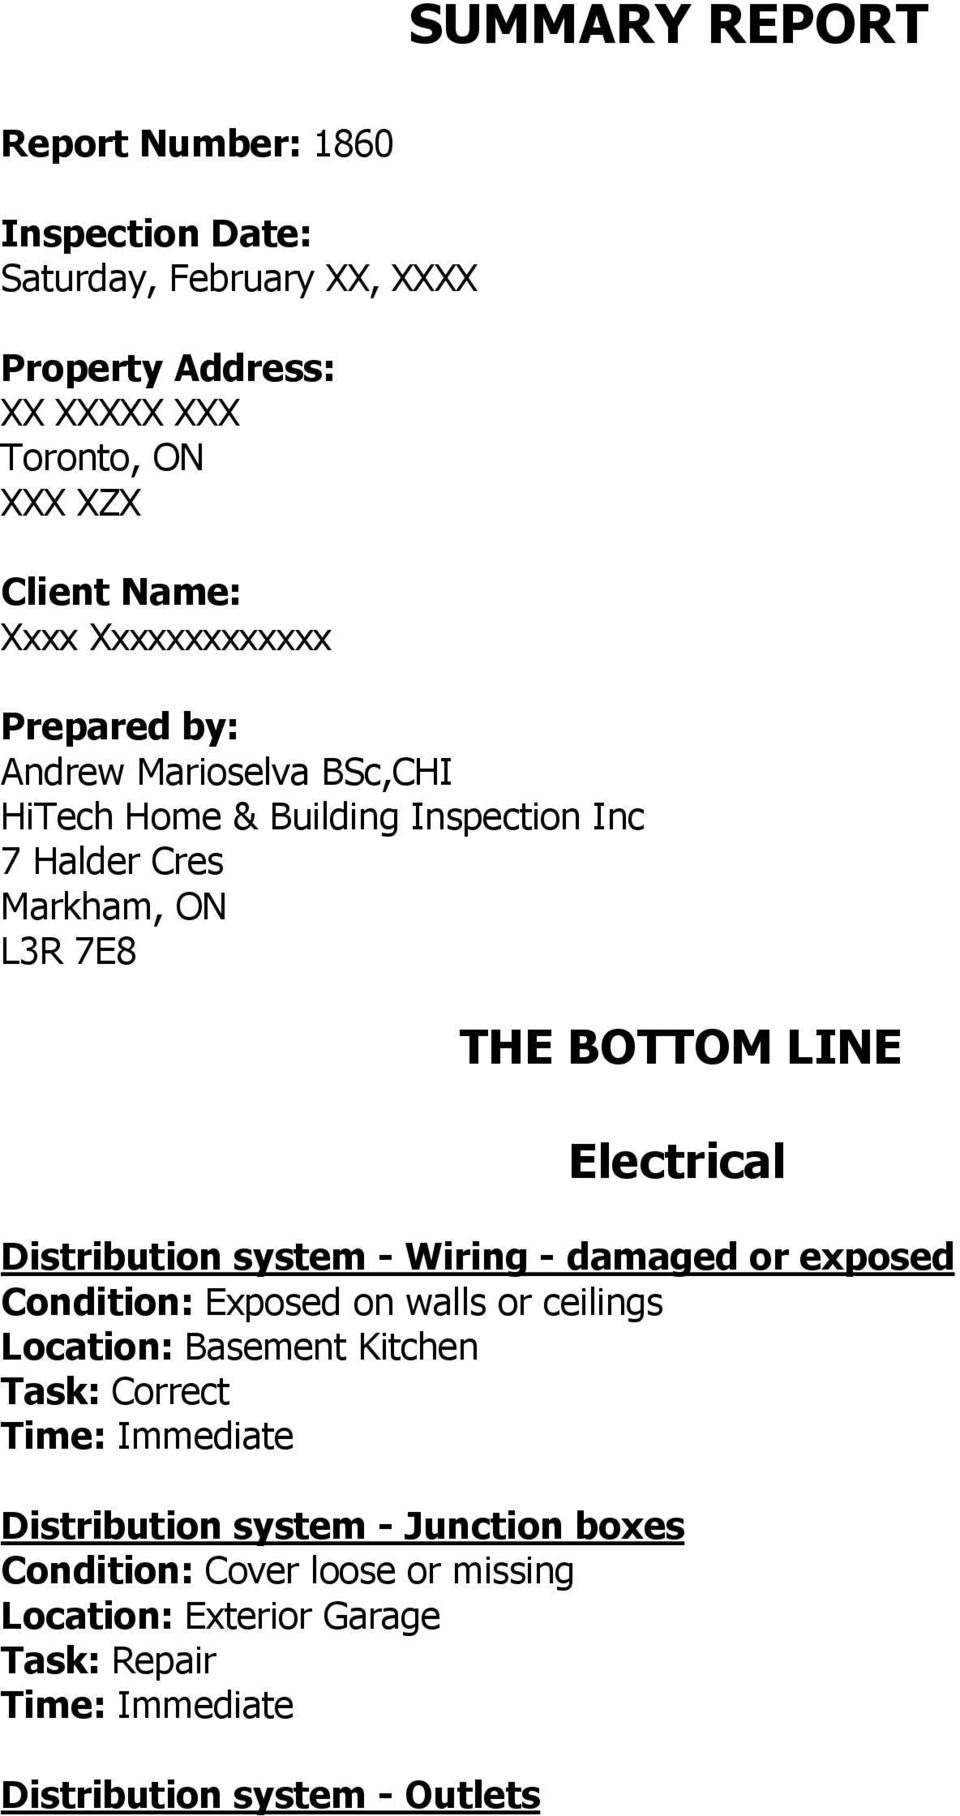 BOTTOM LINE Electrical Distribution system - Wiring - damaged or exposed Condition: Exposed on walls or ceilings Location: Basement Kitchen